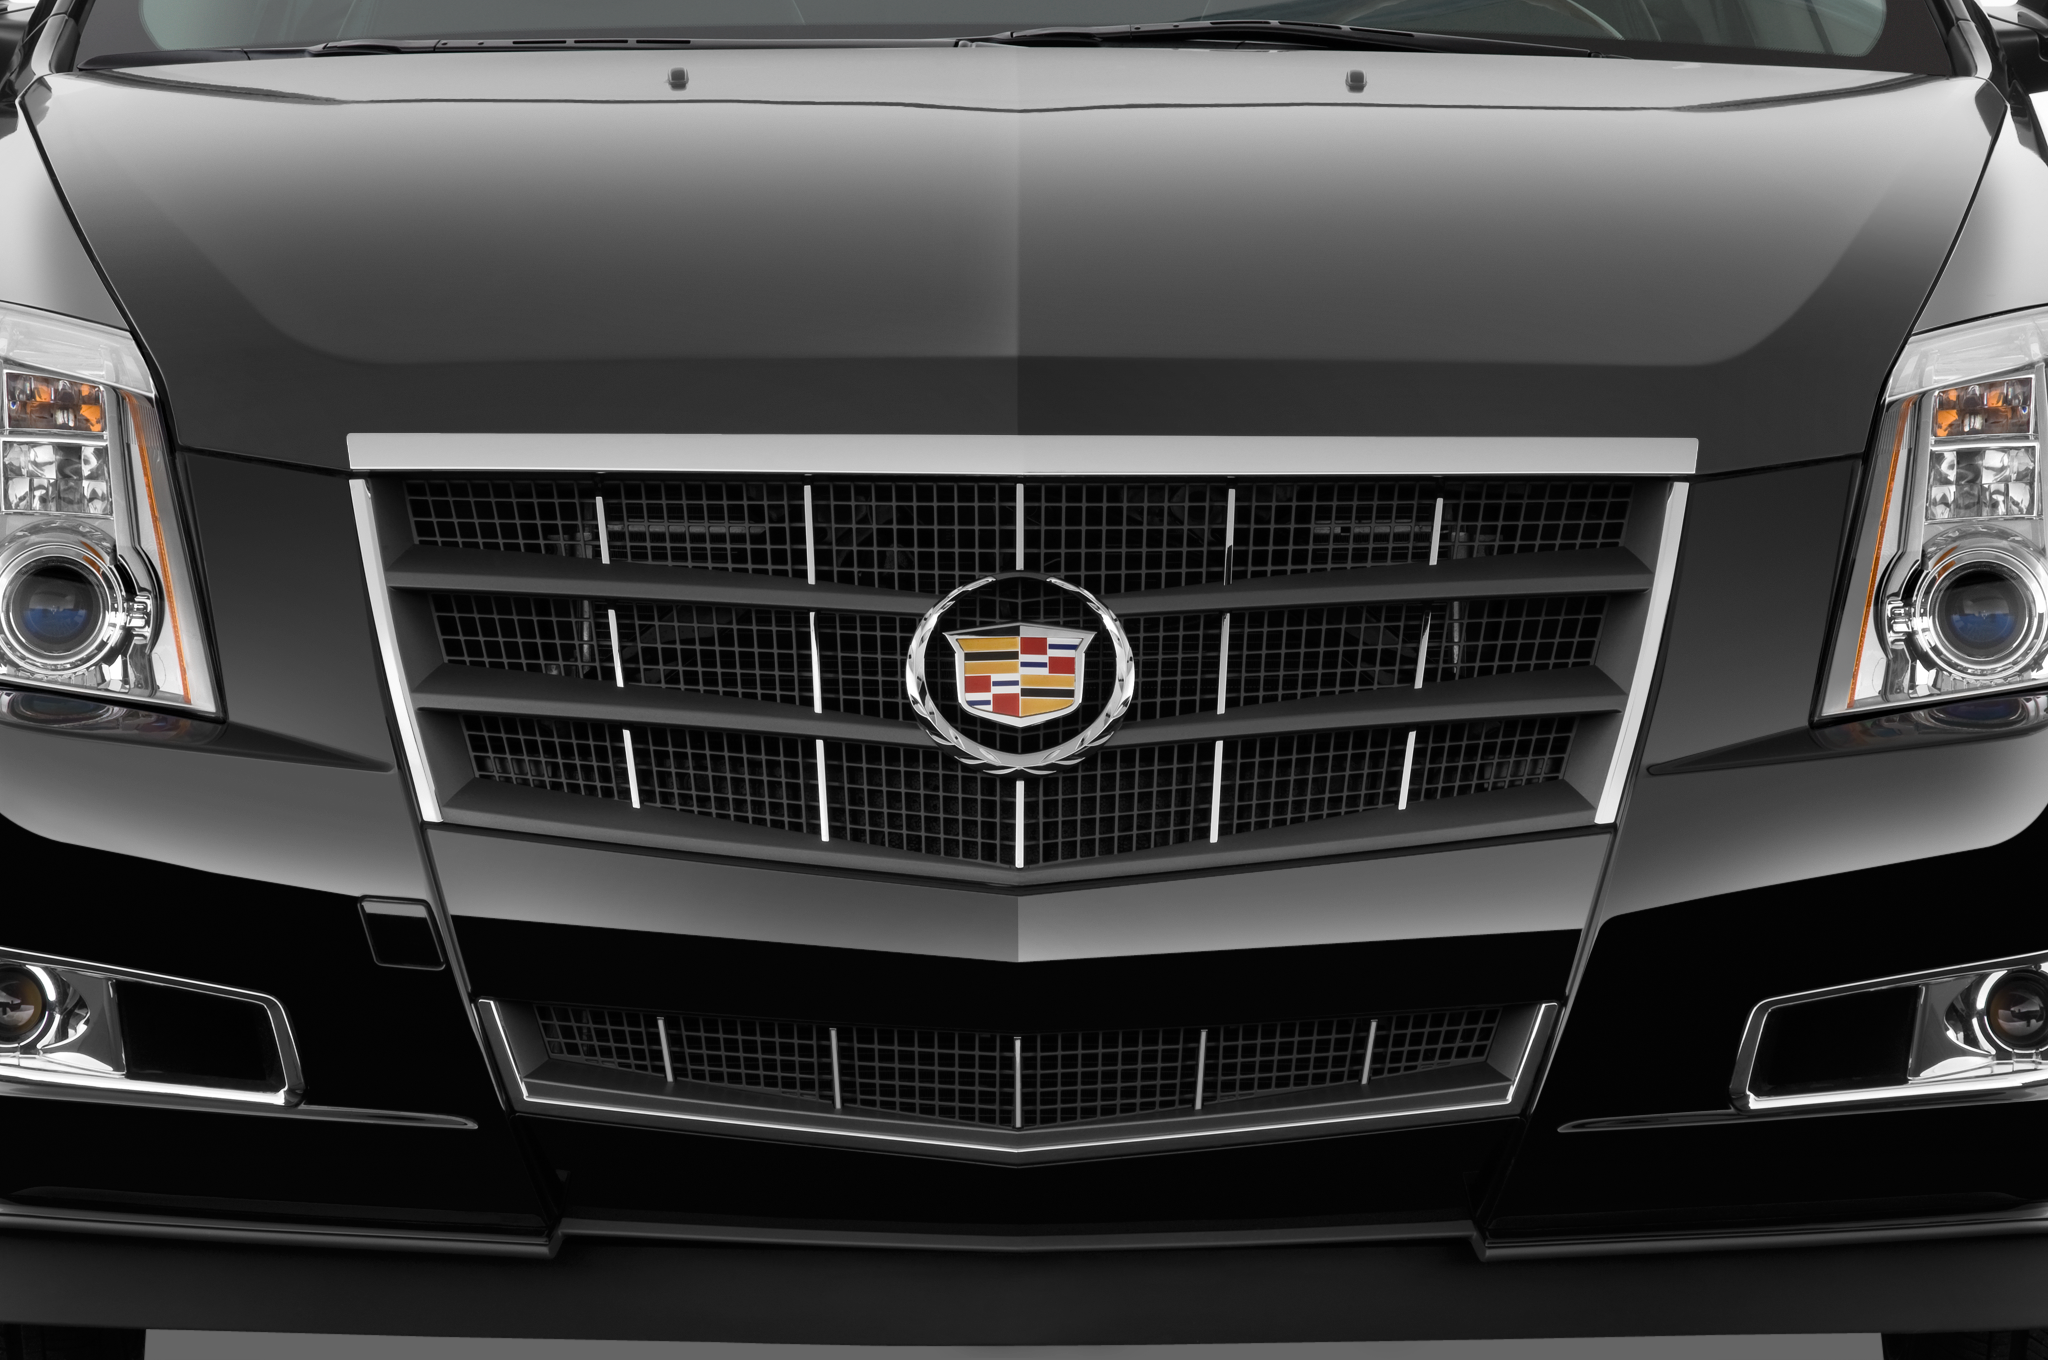 test own its have a drive anything ats cadillac for ready caddyinfo buy to go roadtrip and wordpress fun